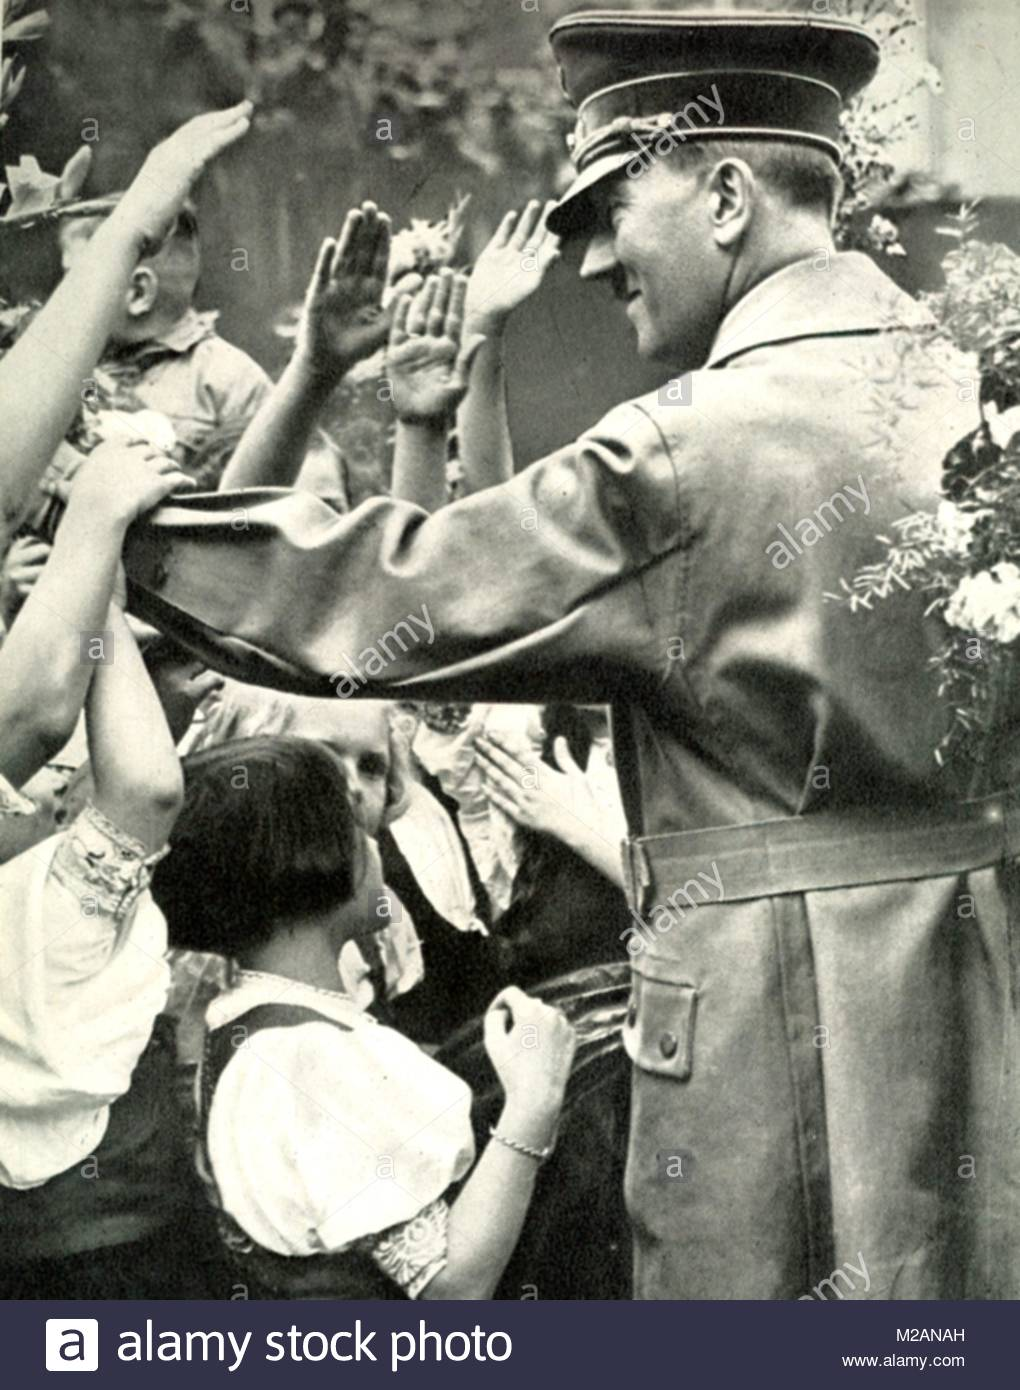 Adolf Hitler greets crowd during a visit to a German town, c1938 - Stock Image